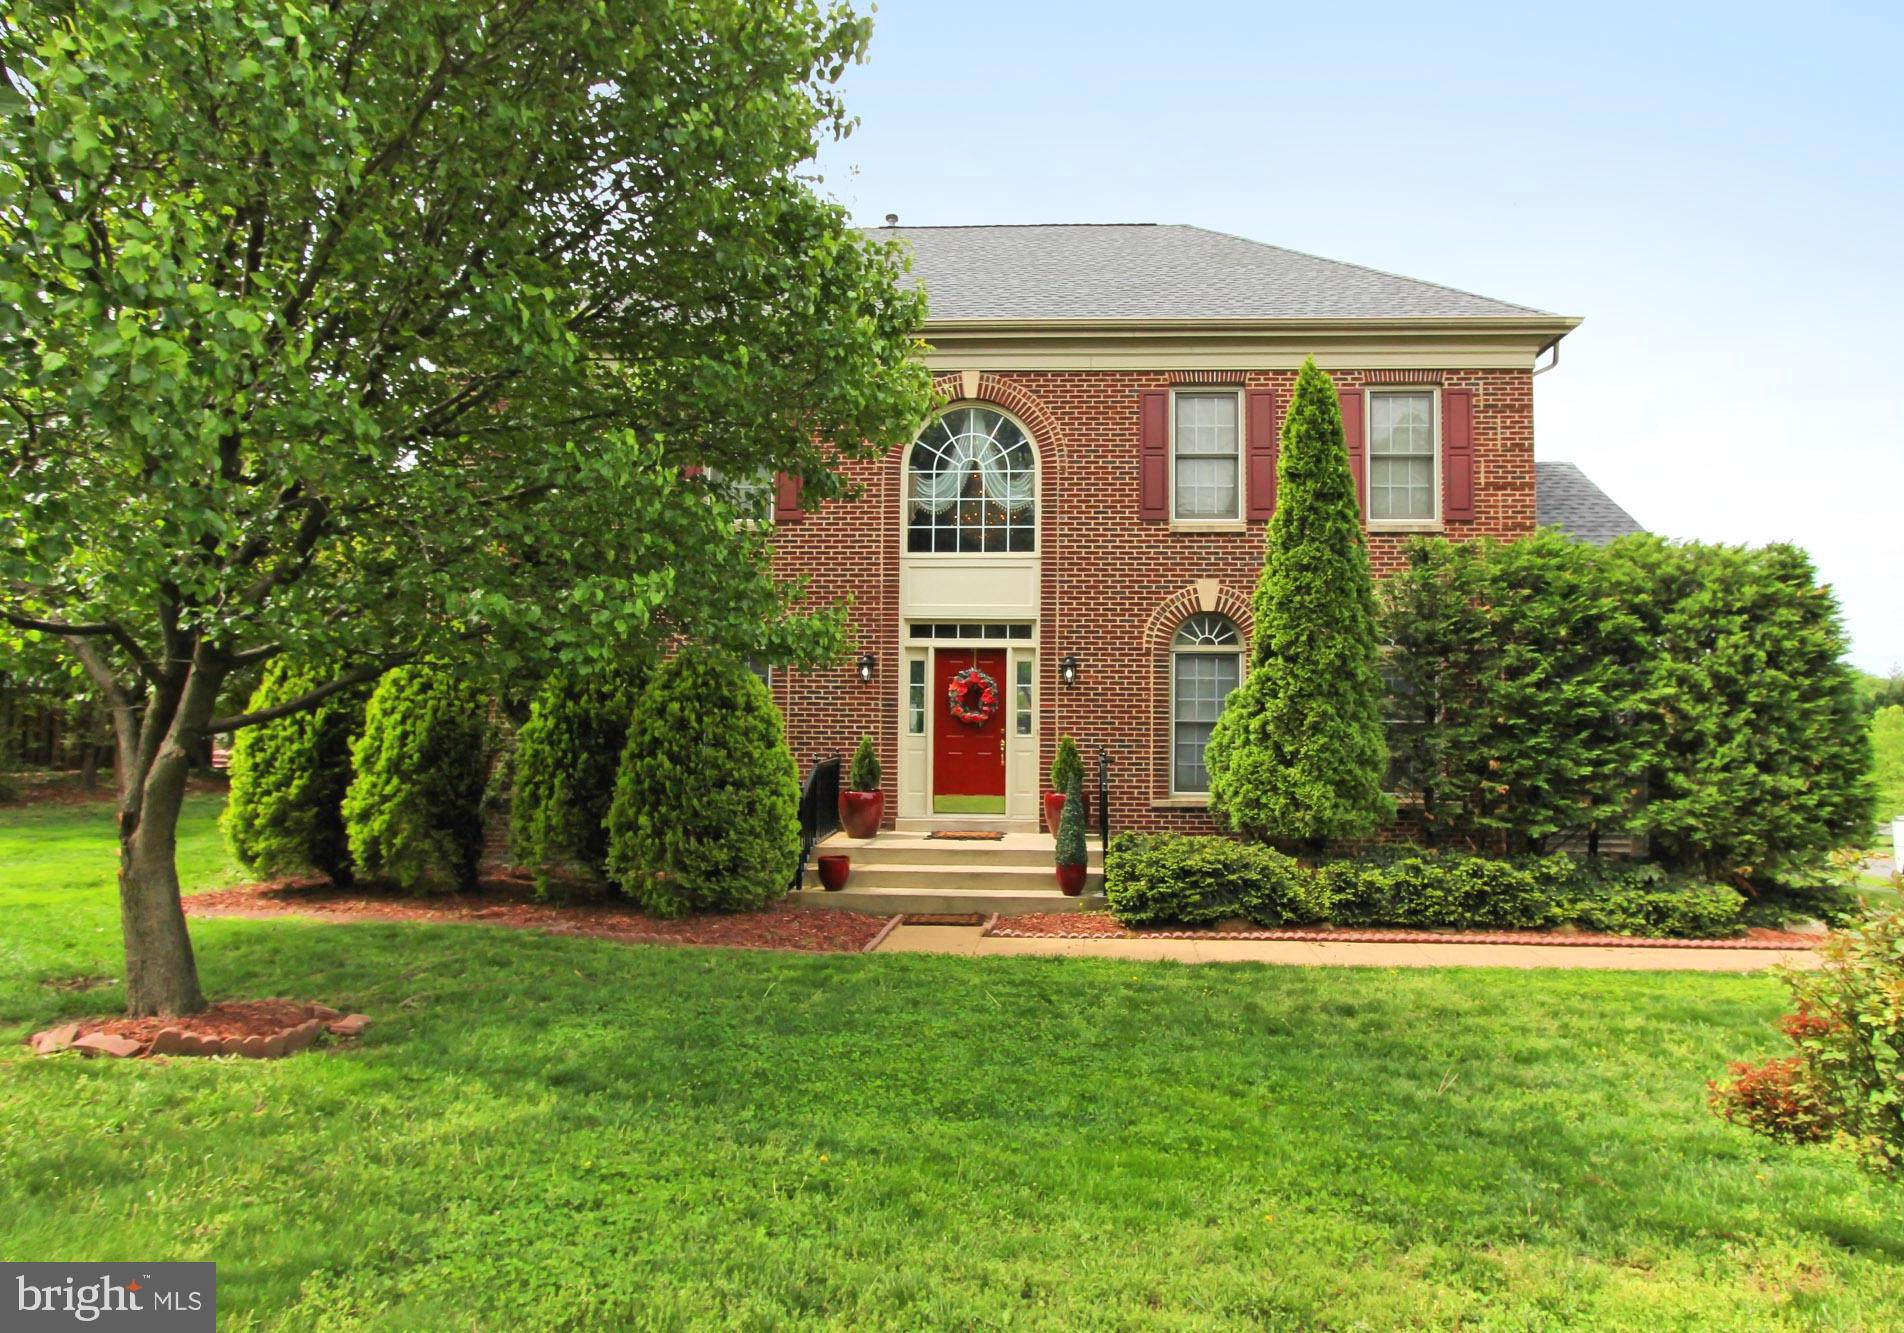 Welcome to 6221 Jean Louise Way in Alexandria, Virginia! Nestled in the sought-after Valley View Manor community, this beautiful 6 bedrooms, 4.5 bath Colebrook model luxury home delivers plenty of interior space, (more than 5,000 sq.ft ) and a .34 acre lot ideally situated on a quiet side street. A stately brick facade, 2-car side-loading garage, expert landscaping, an open floor plan, high ceilings, hardwood floors, dual staircases, fireplace, custom moldings, and an abundance of windows and skylights, an office in the main level. It has new roof and plenty of storage space in the basement. All these can be found in a peaceful community with close proximity to I-95, the Beltway, Braddock Road, 2 Metro stations, and Route 236. Plenty of shopping, dining, and entertainment choices are available in every direction or you can explore the dozens of parks sprinkled across the area, there is something here for everyone. For an exceptional home built with high-end finishing touches and distinguished charm, you have found it. Welcome home!